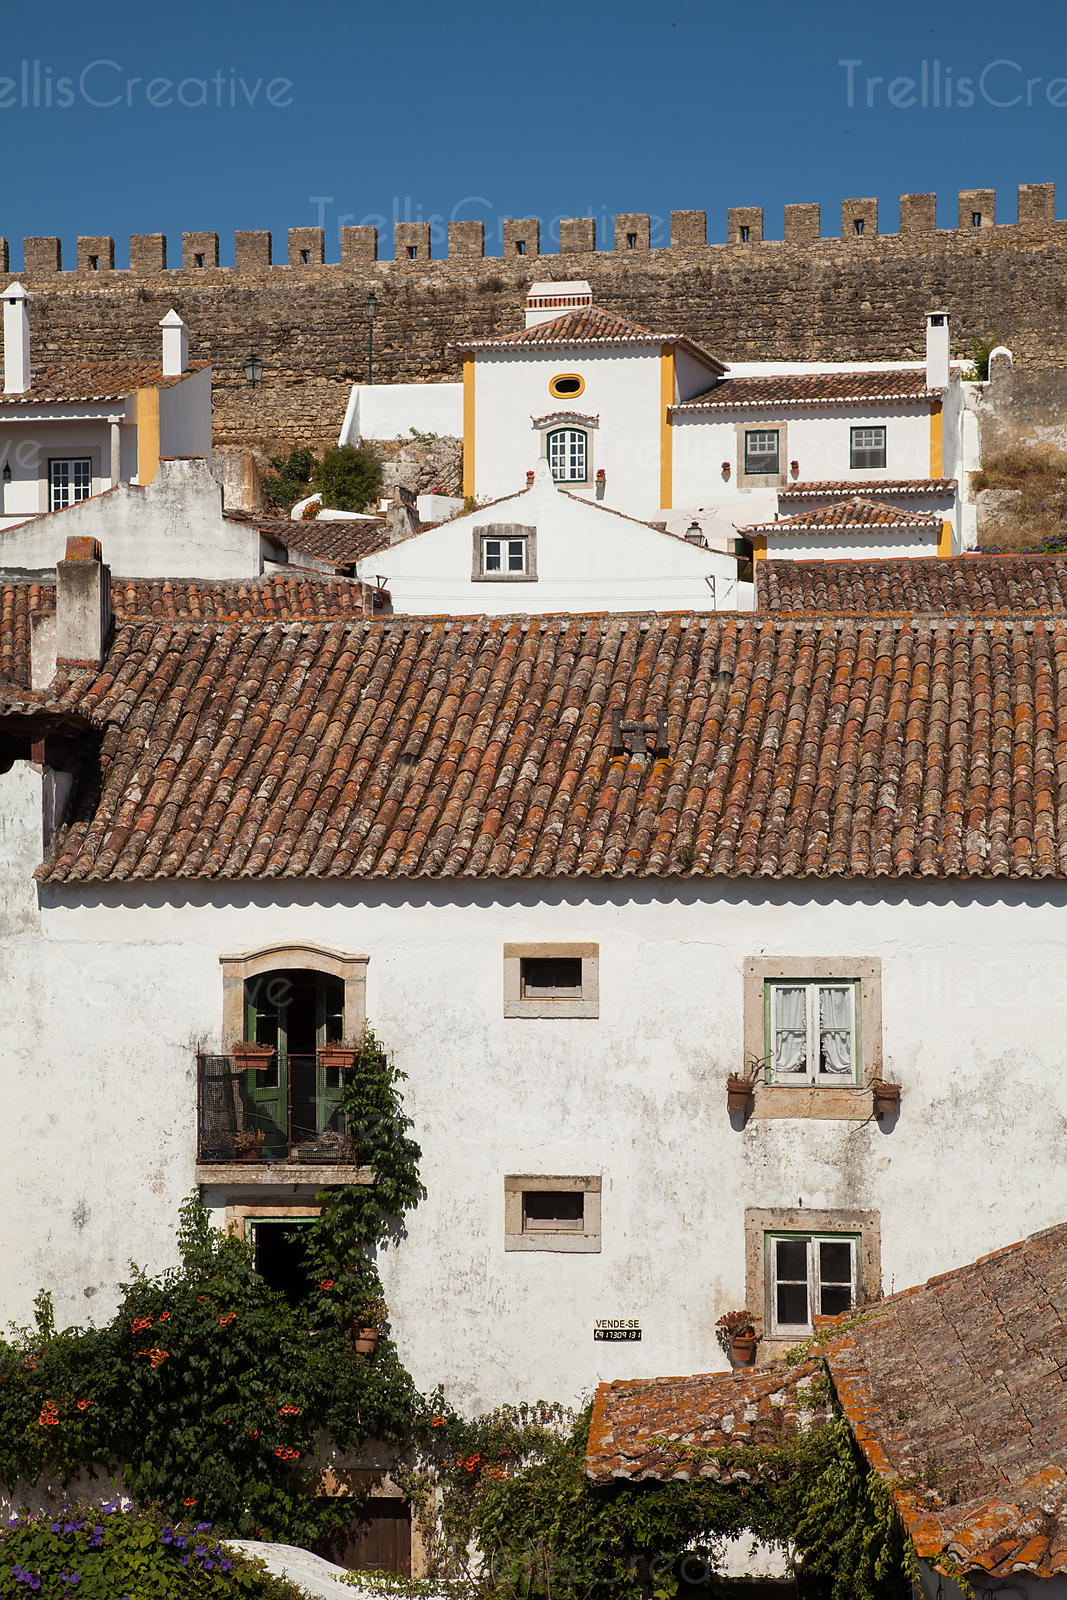 A white washed building in the walled city of Obidos, Portugal.